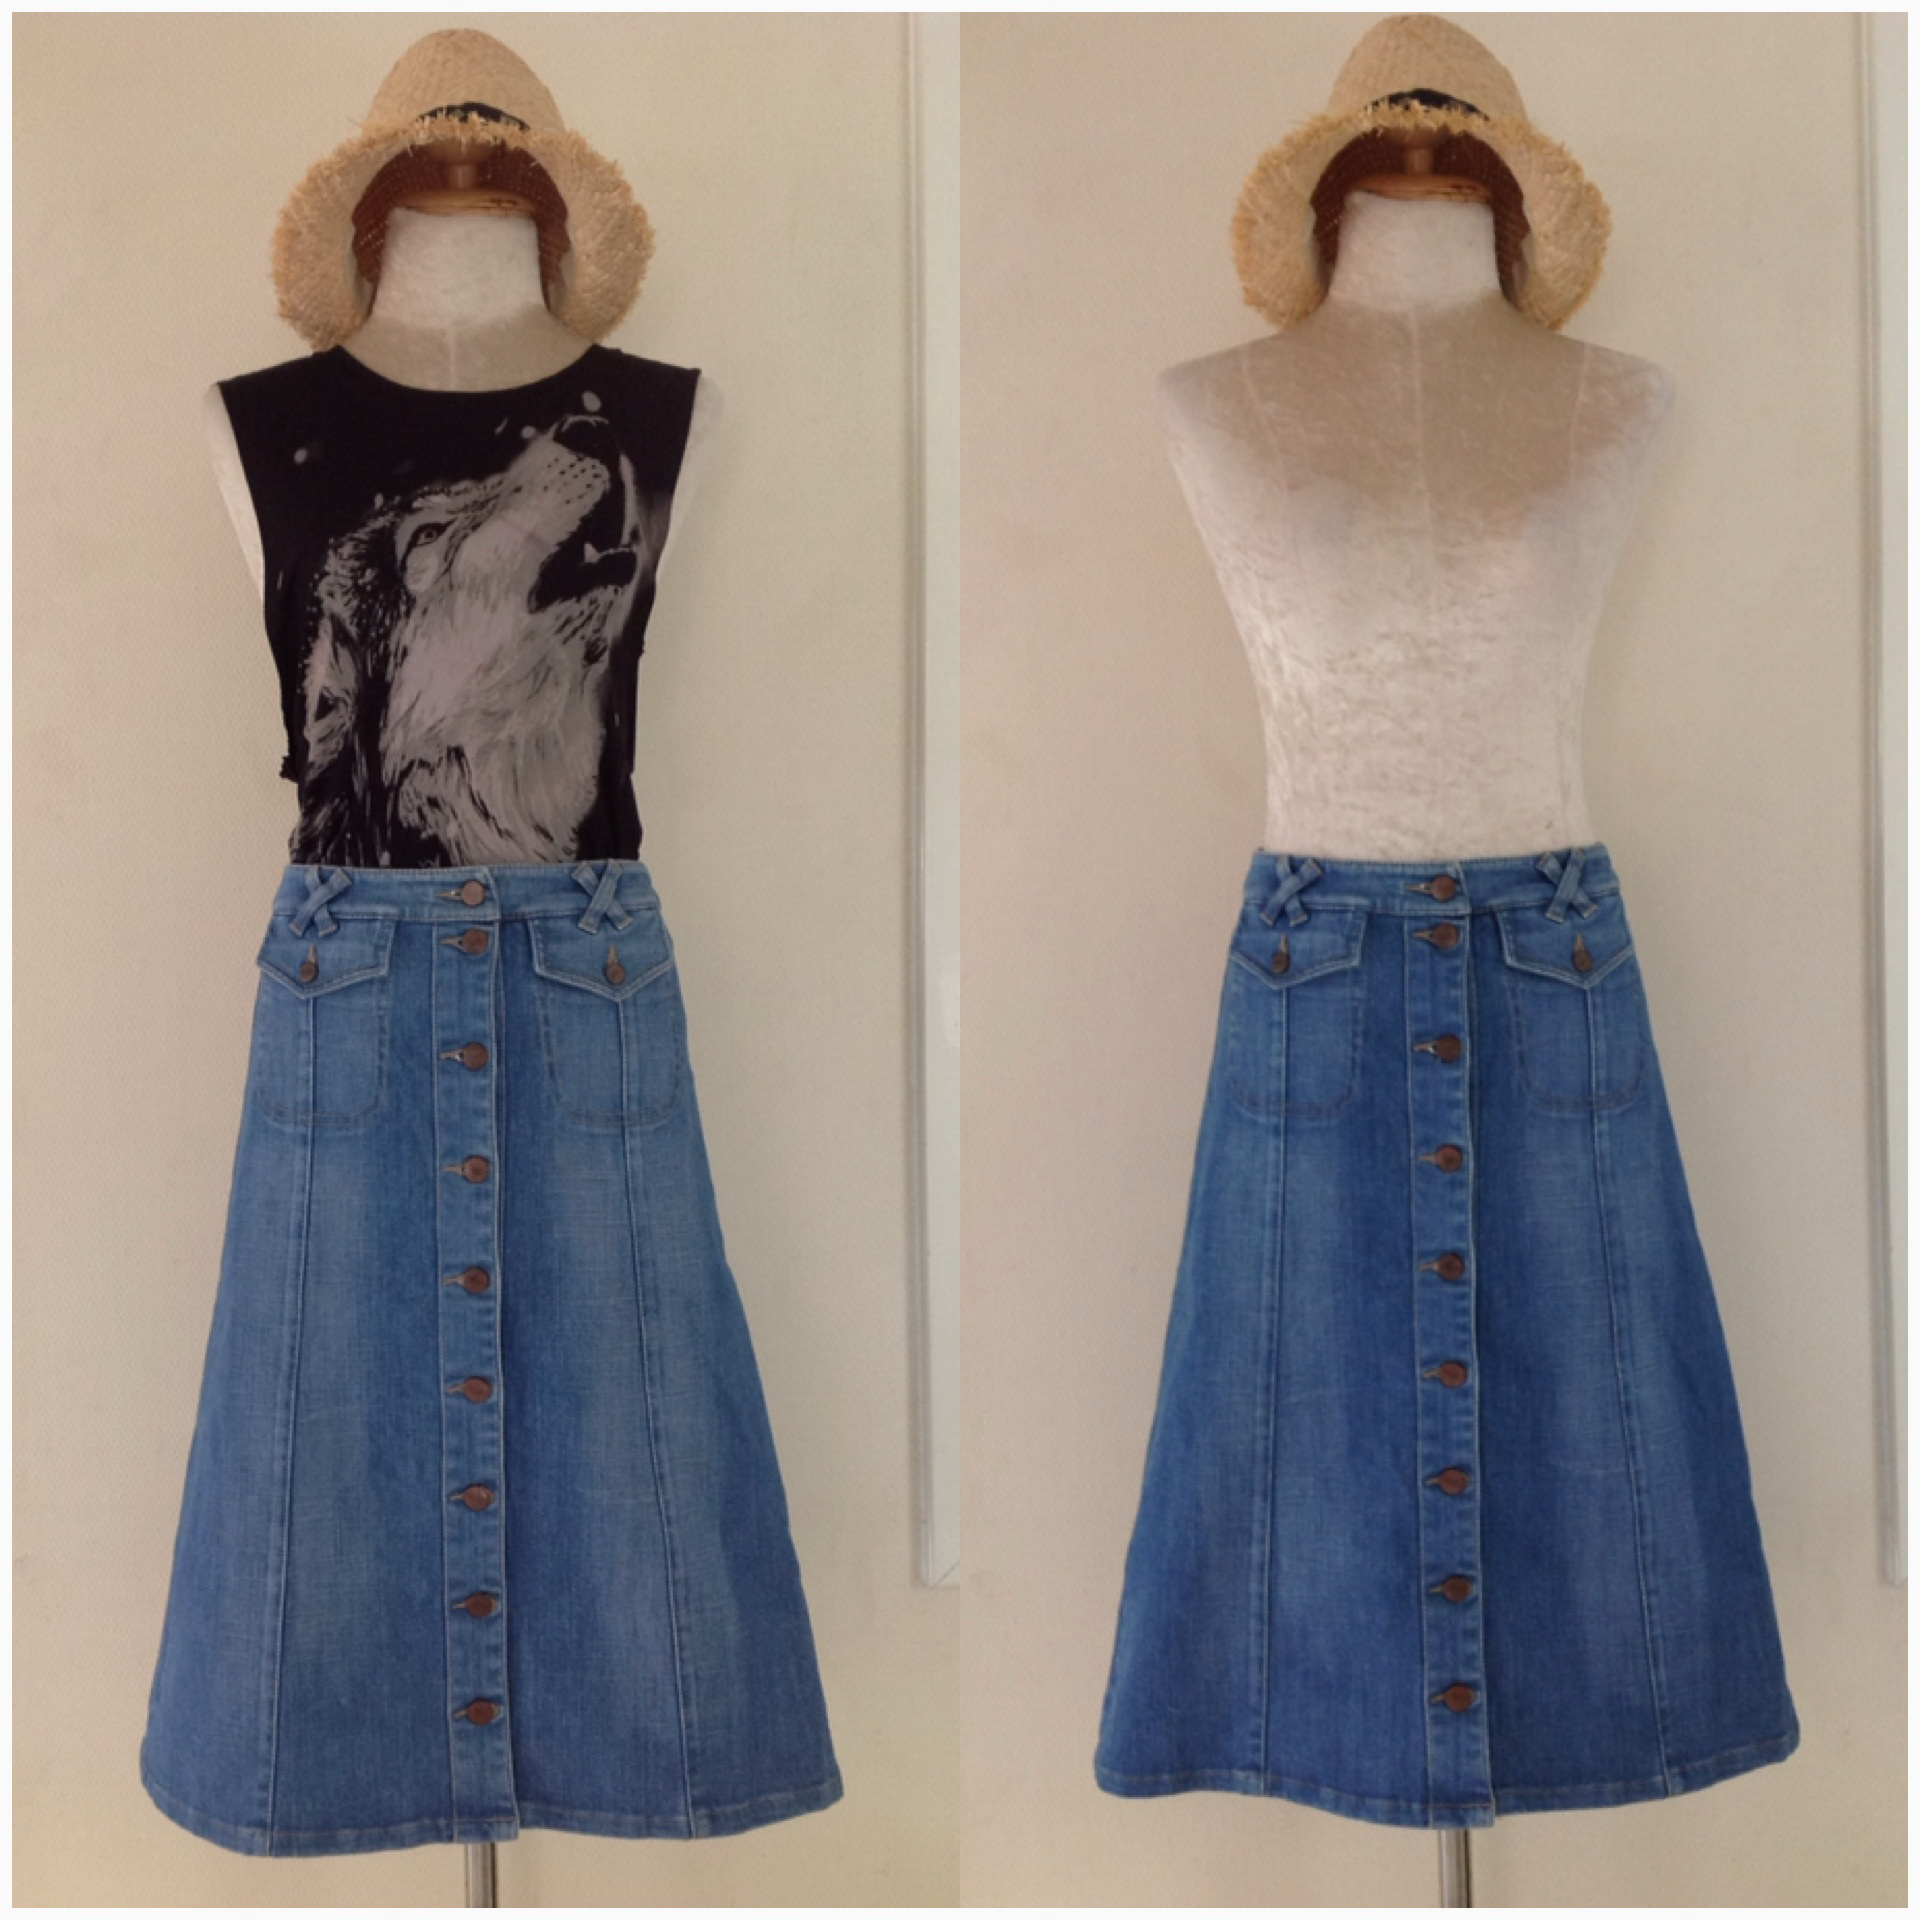 Topshop Moto Denim skirt size uk8-uk10